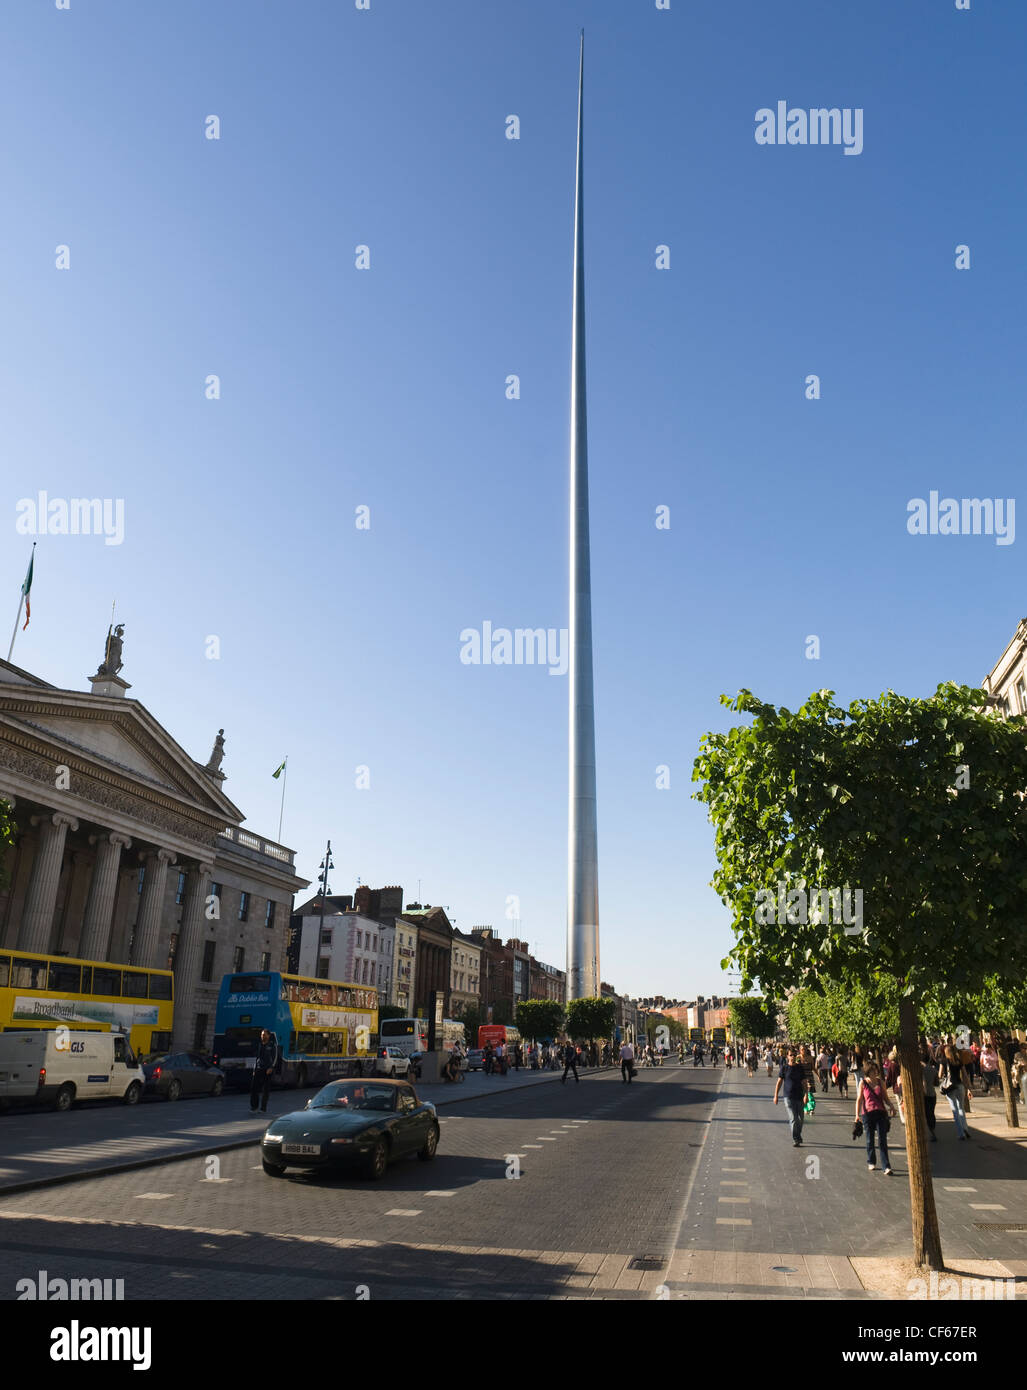 The Spire of Dublin, officially titled the Monument of Light, was completed in 2003 as part of a regeneration project - Stock Image